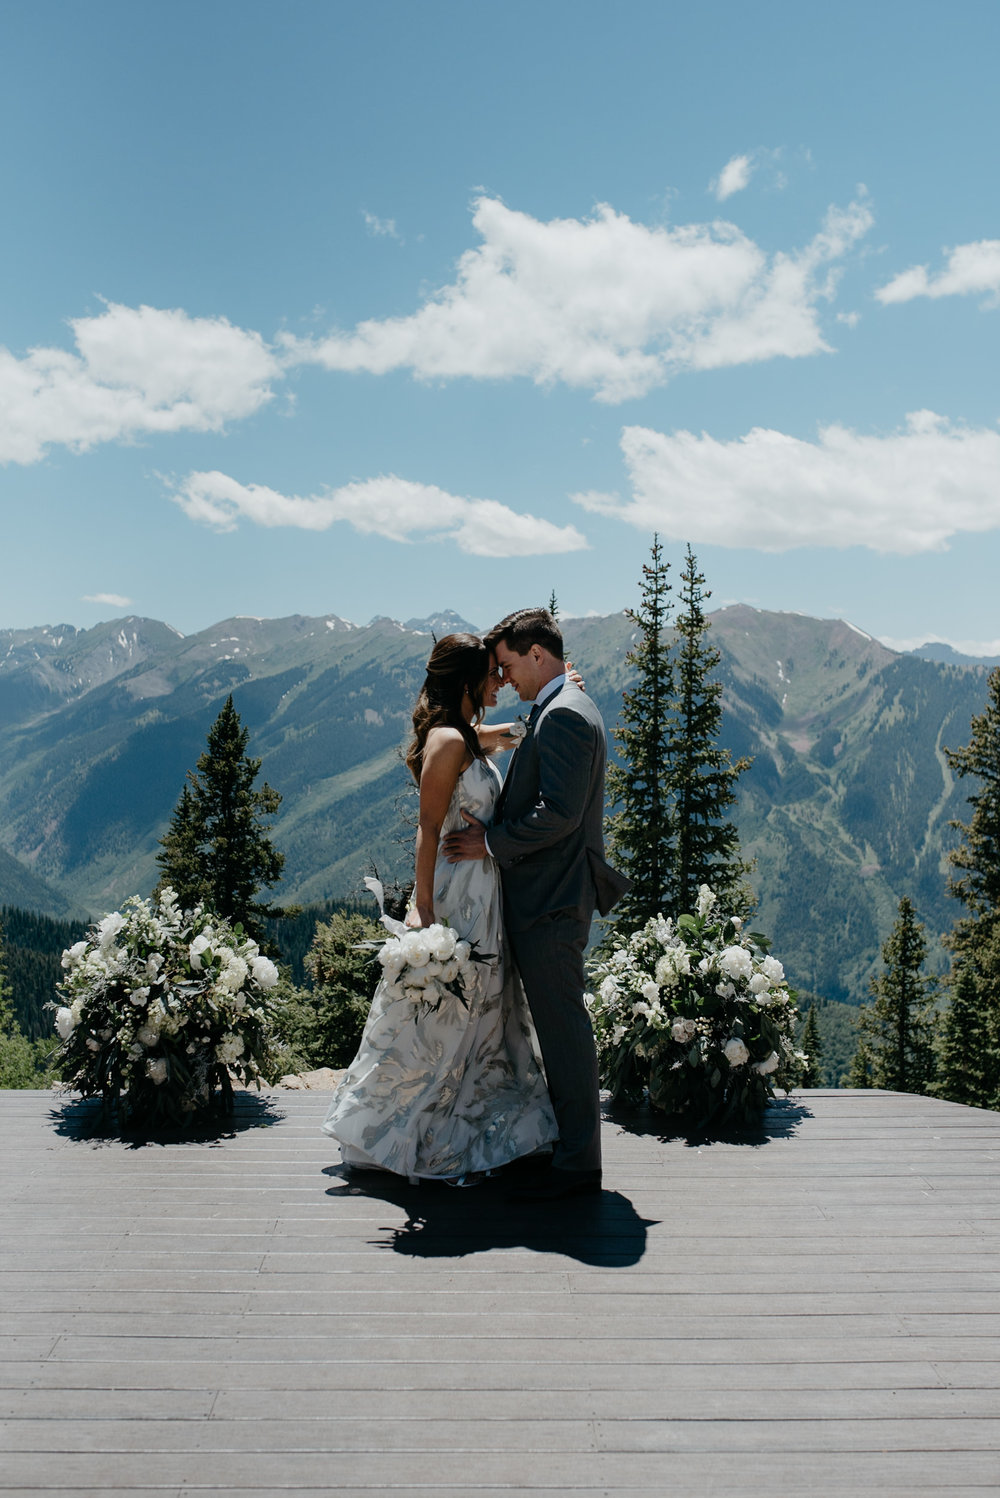 Aspen elopement and wedding photographer, Alyssa Reinhold.